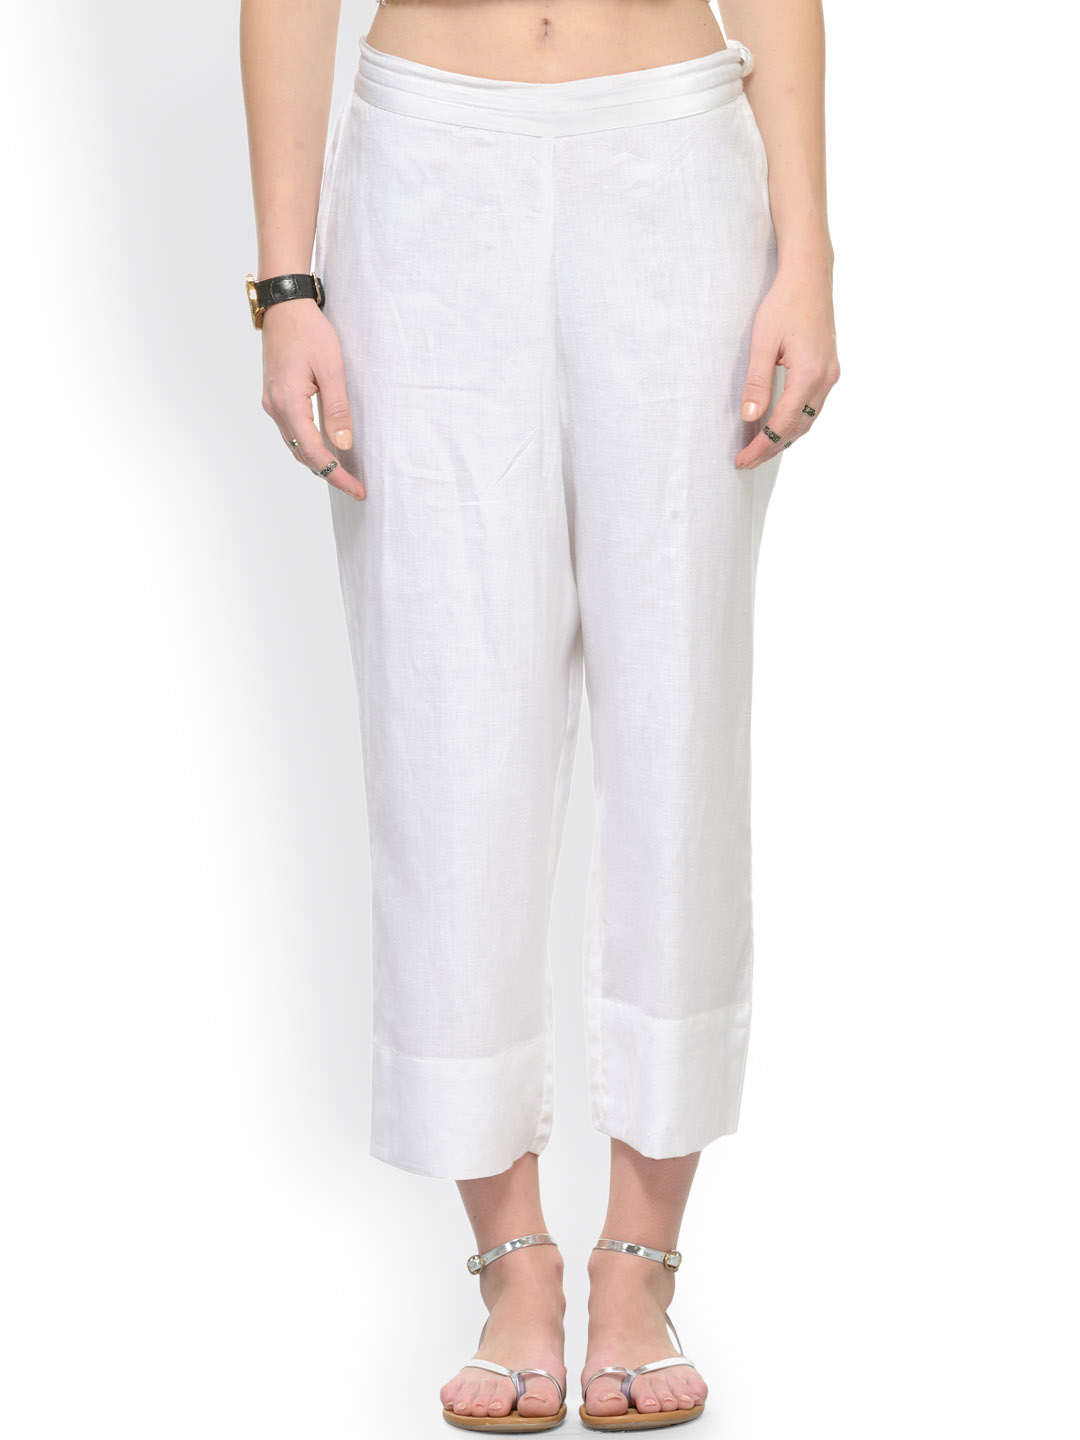 White Rayon Ankle Length Pant-33680